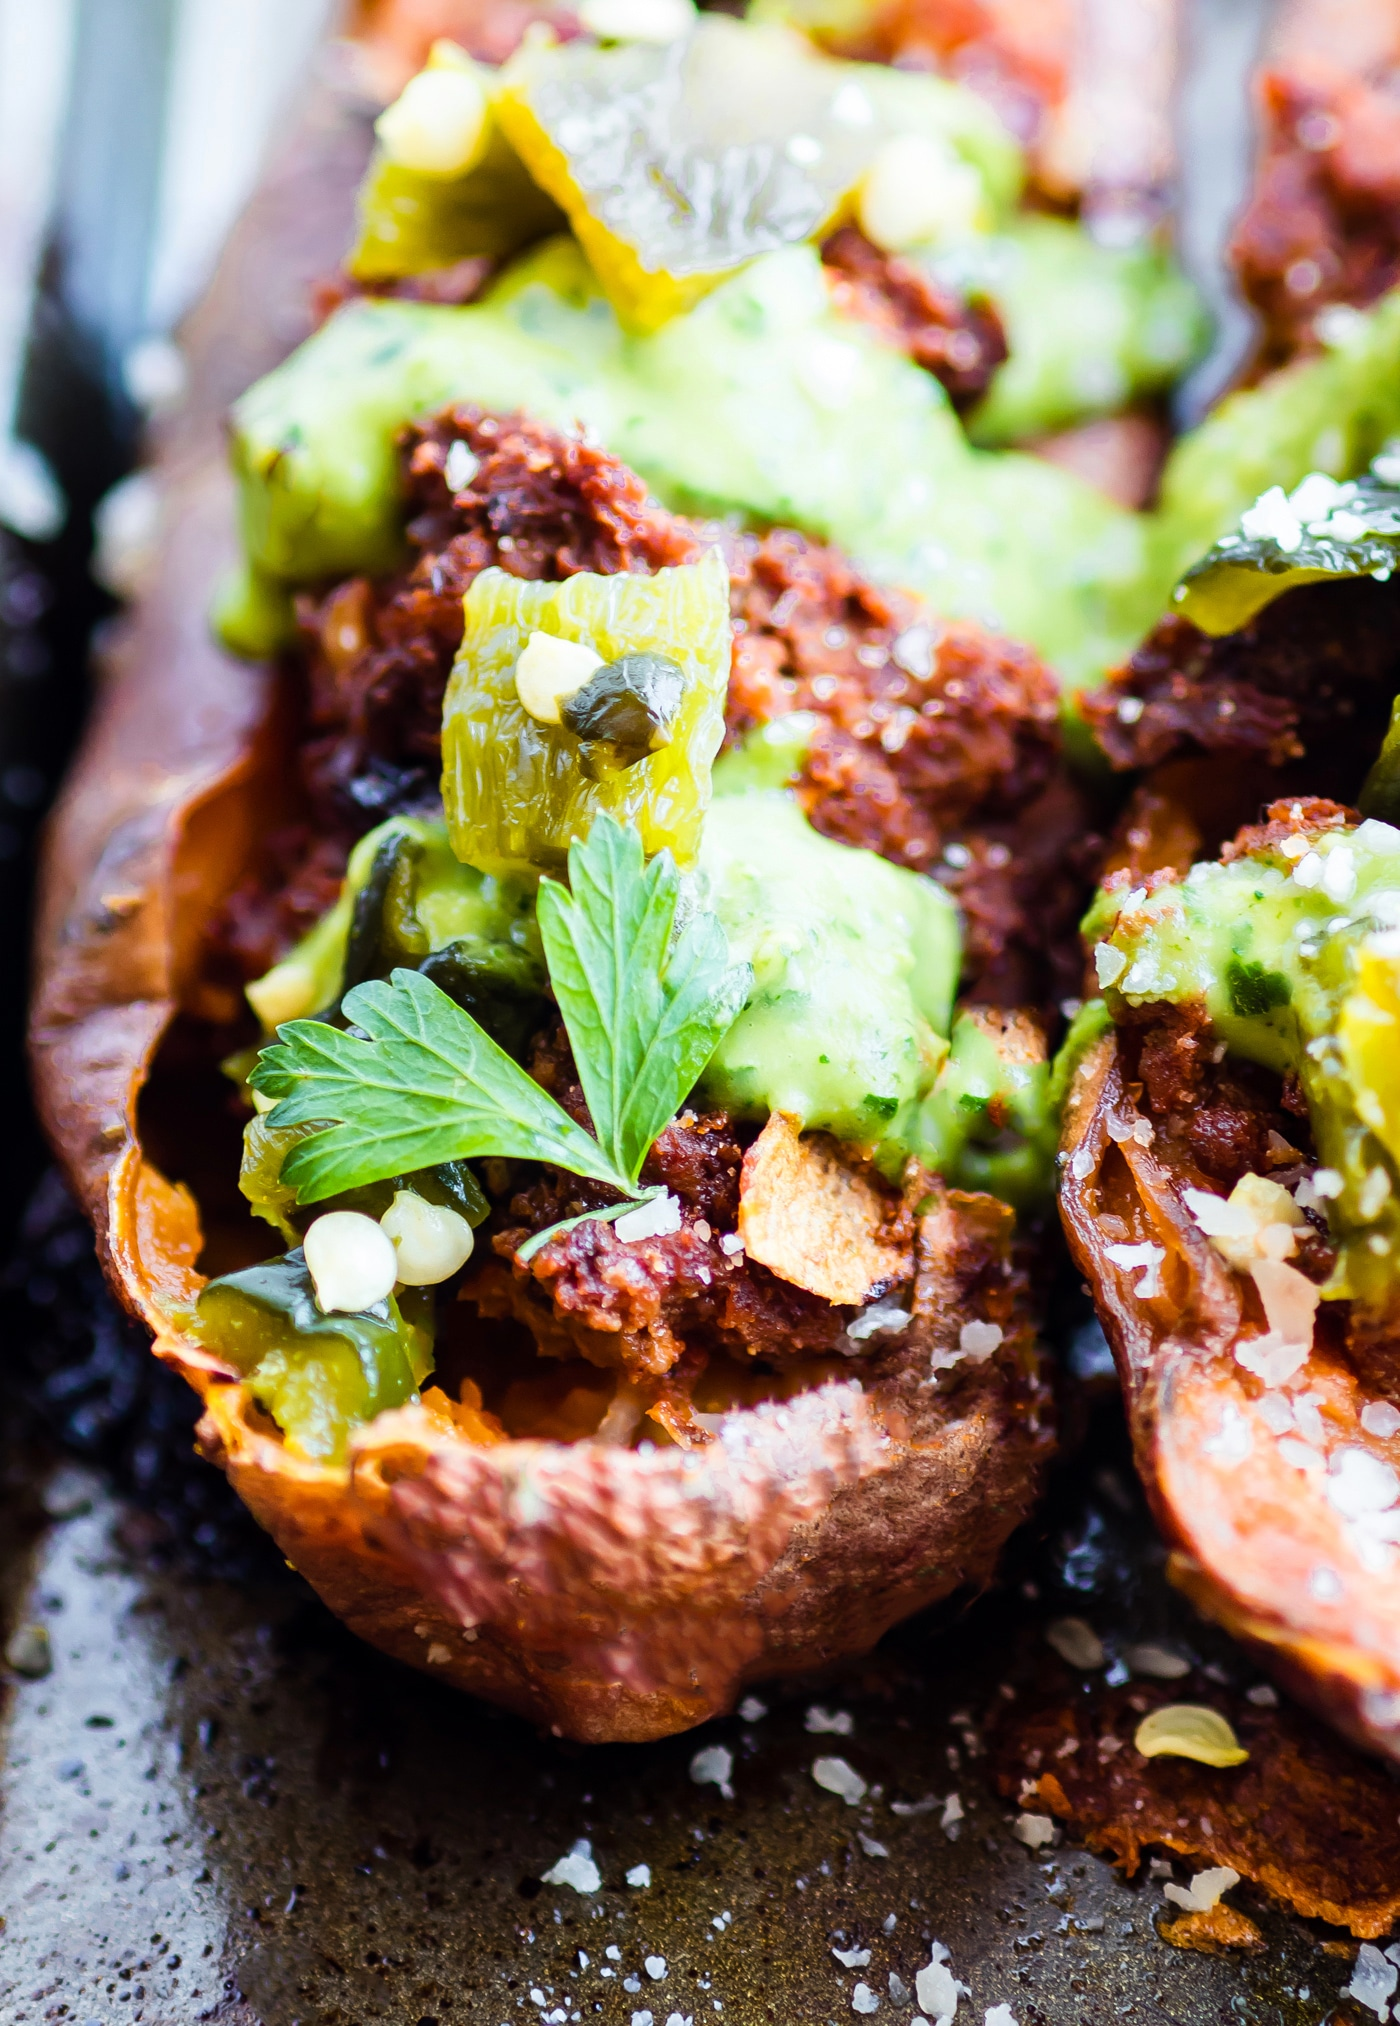 Ancho Beef Chili Stuffed Sweet Potato Skins. A paleo meal or appetizer that is so simple to make and full of flavor! These sweet potato skins are filled to the max with tasty ancho beef chili, chopped and roasted poblanos, and a spicy avocado cream sauce. The best kind of dish to satisfy that hunger. Dairy free, gluten free, and whole 30 friendly ya'll!